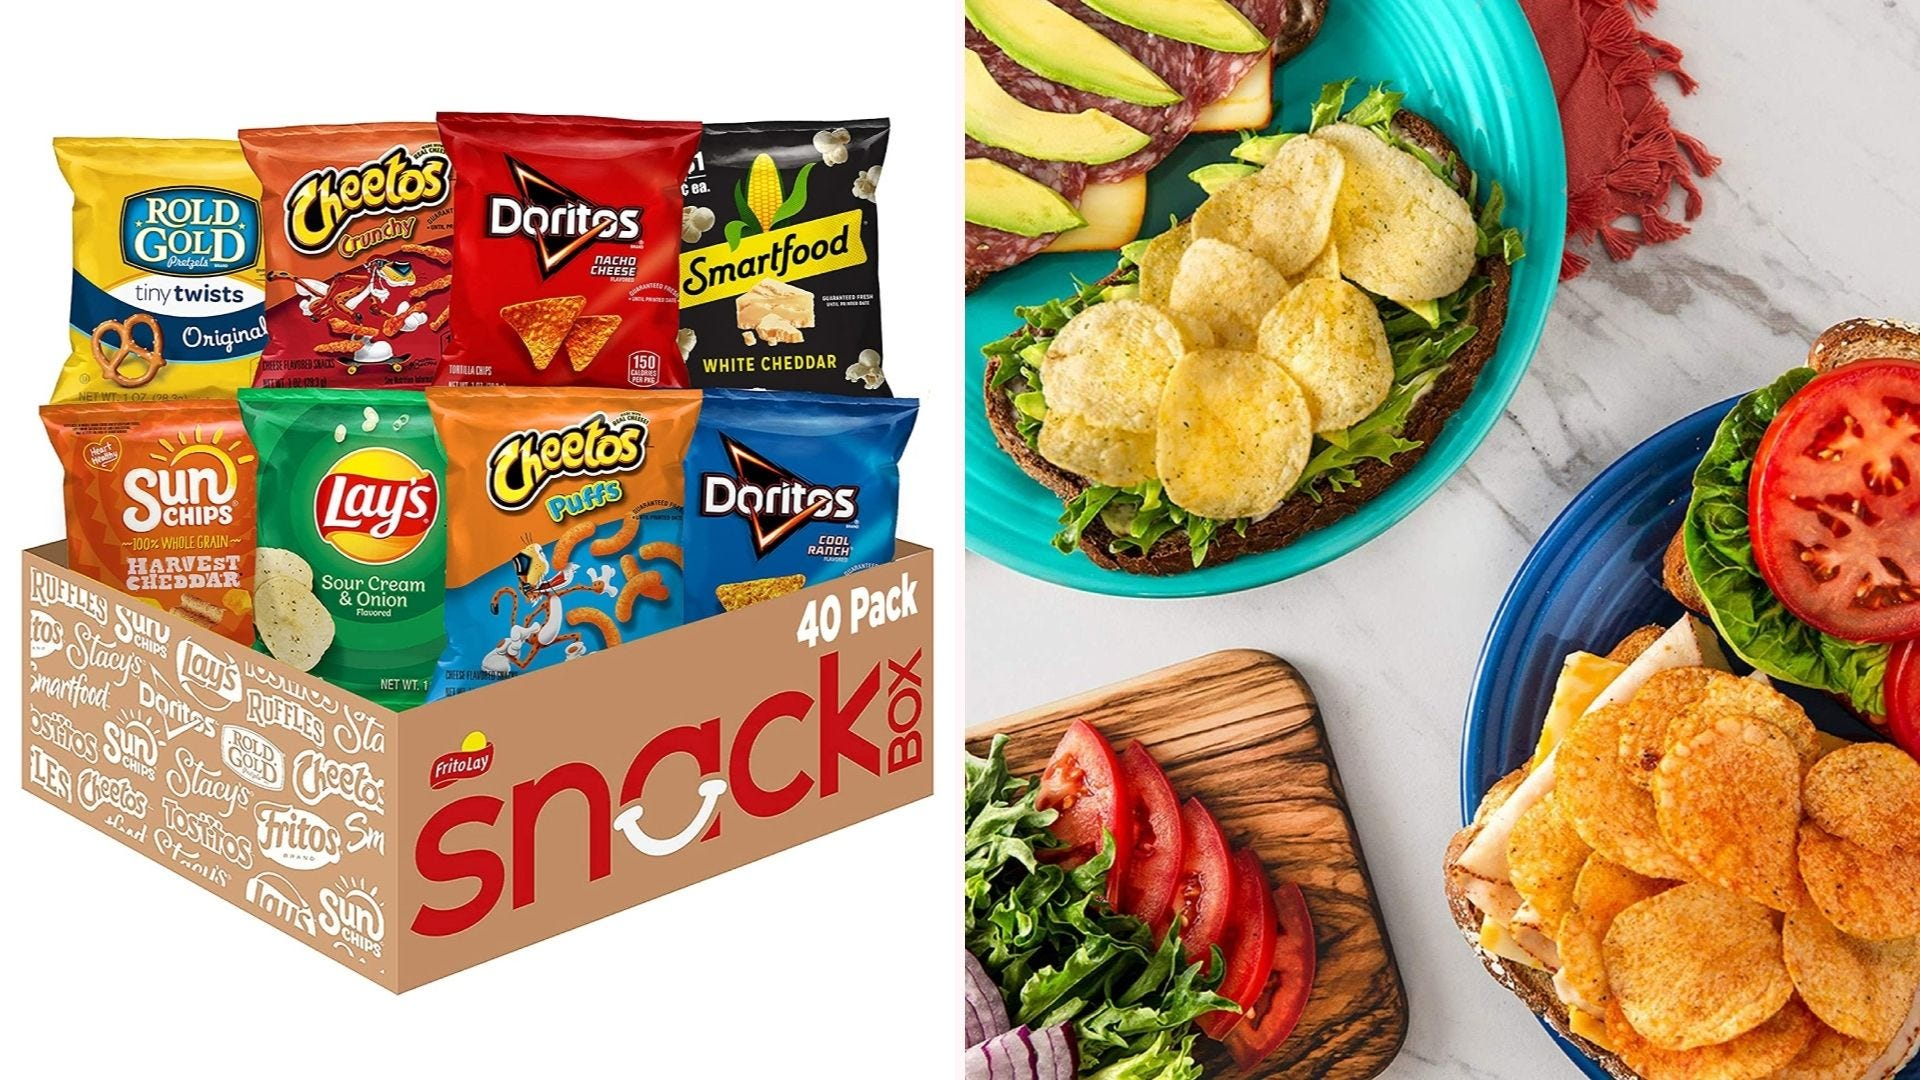 On the left, eight differently flavored bags of chips sit in a cardboard box. On the right, two sandwiches are flipped open to reveal a layer of potato chips on top of their contents.